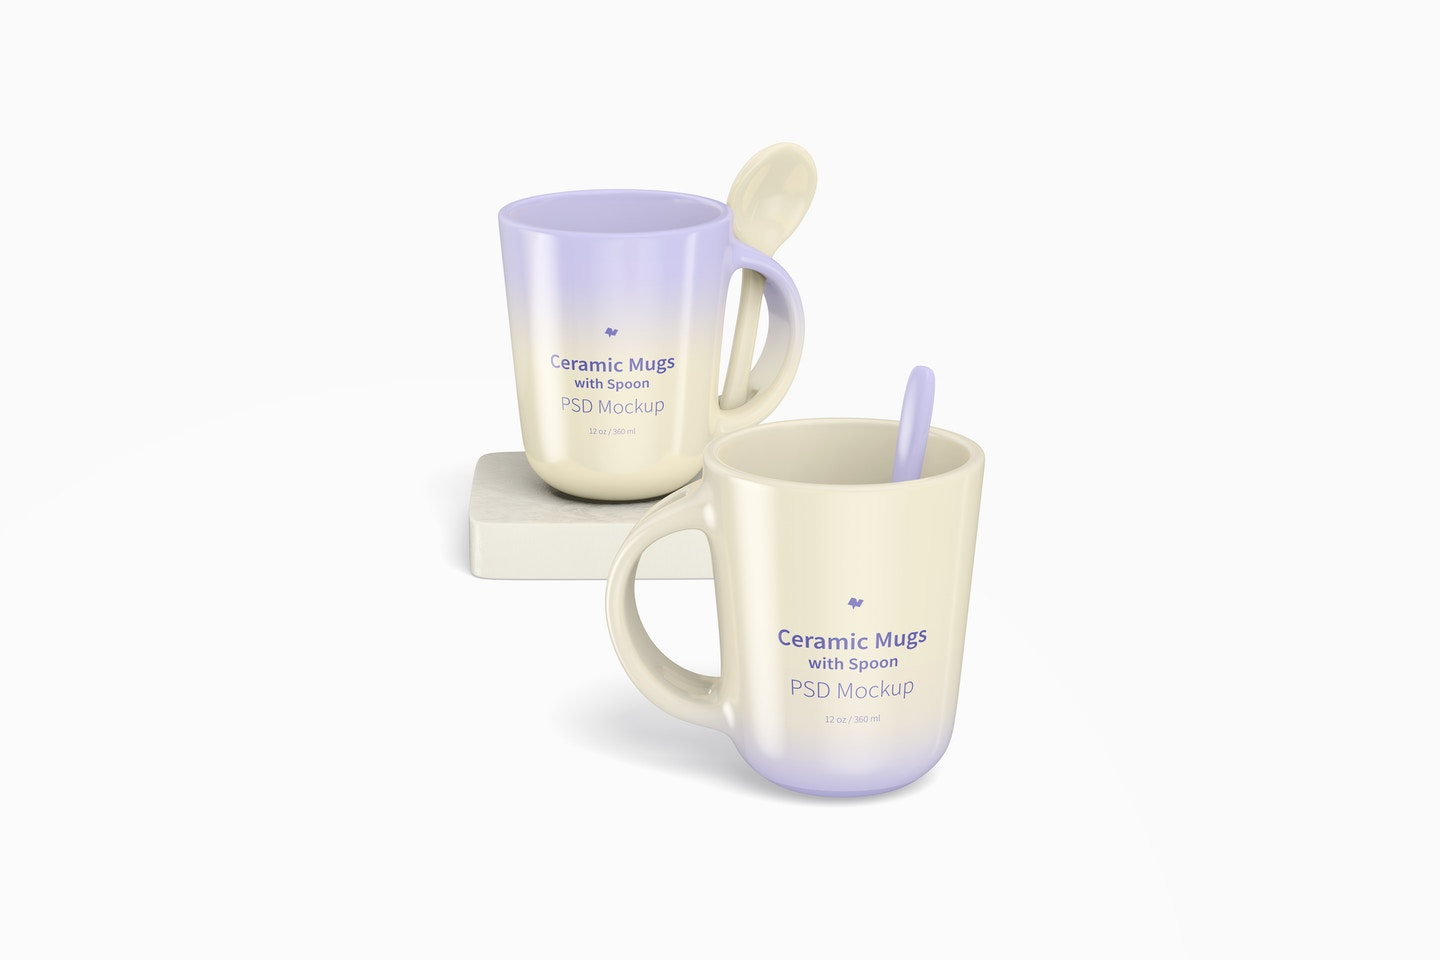 12 oz Ceramic Mugs with Spoon Mockup, Perspective